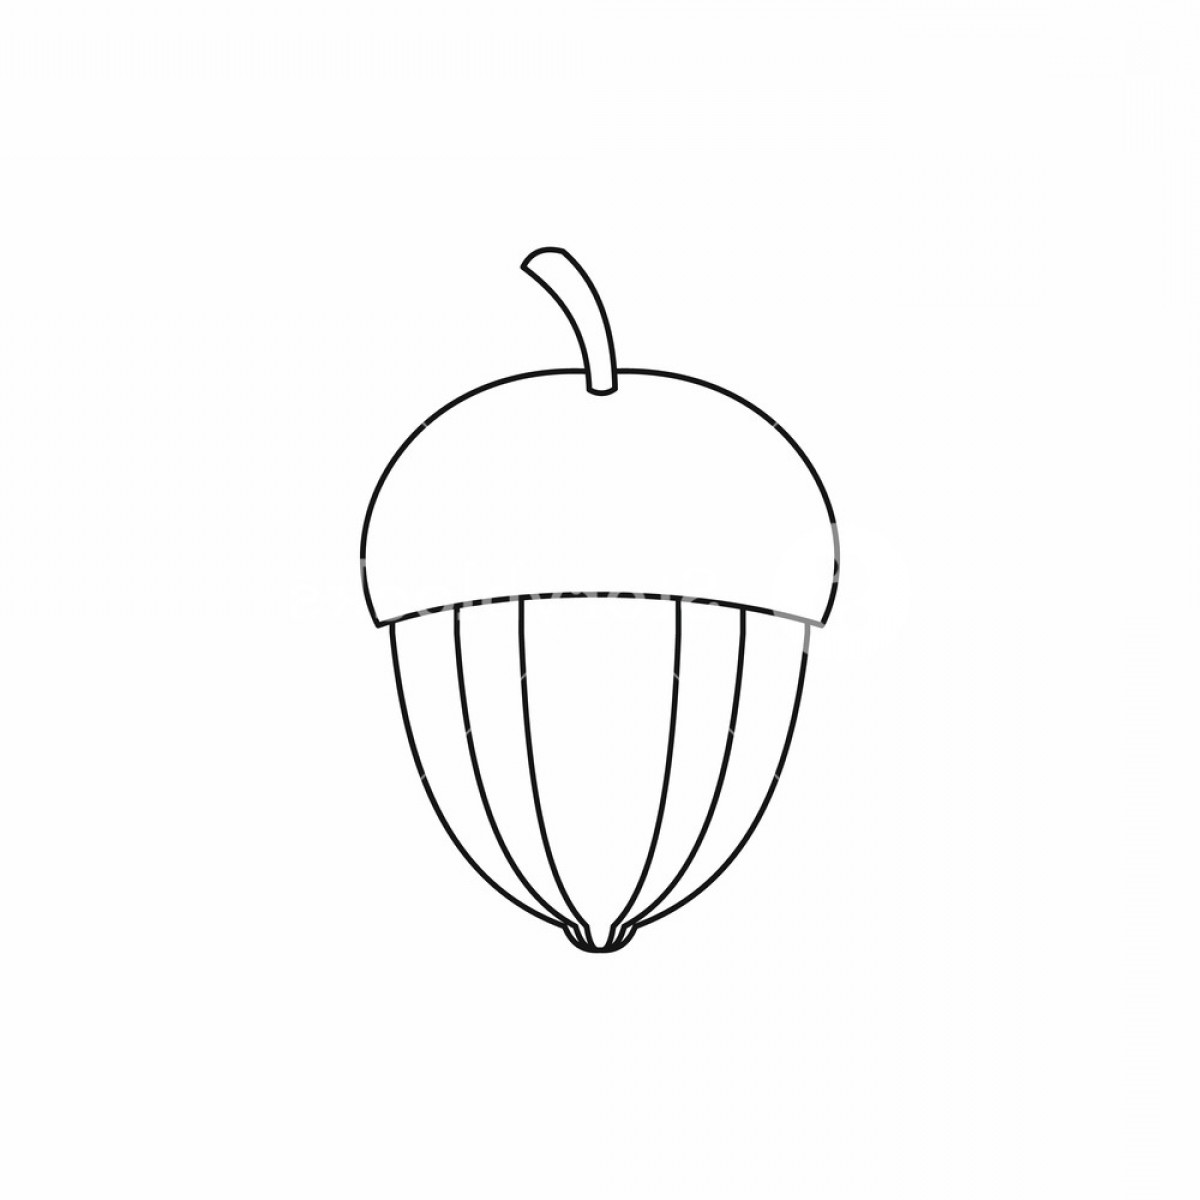 Acorn Outline Vector: Acorn Icon In Outline Style Isolated Vector Illustration Bztoiwizjfqyxpg